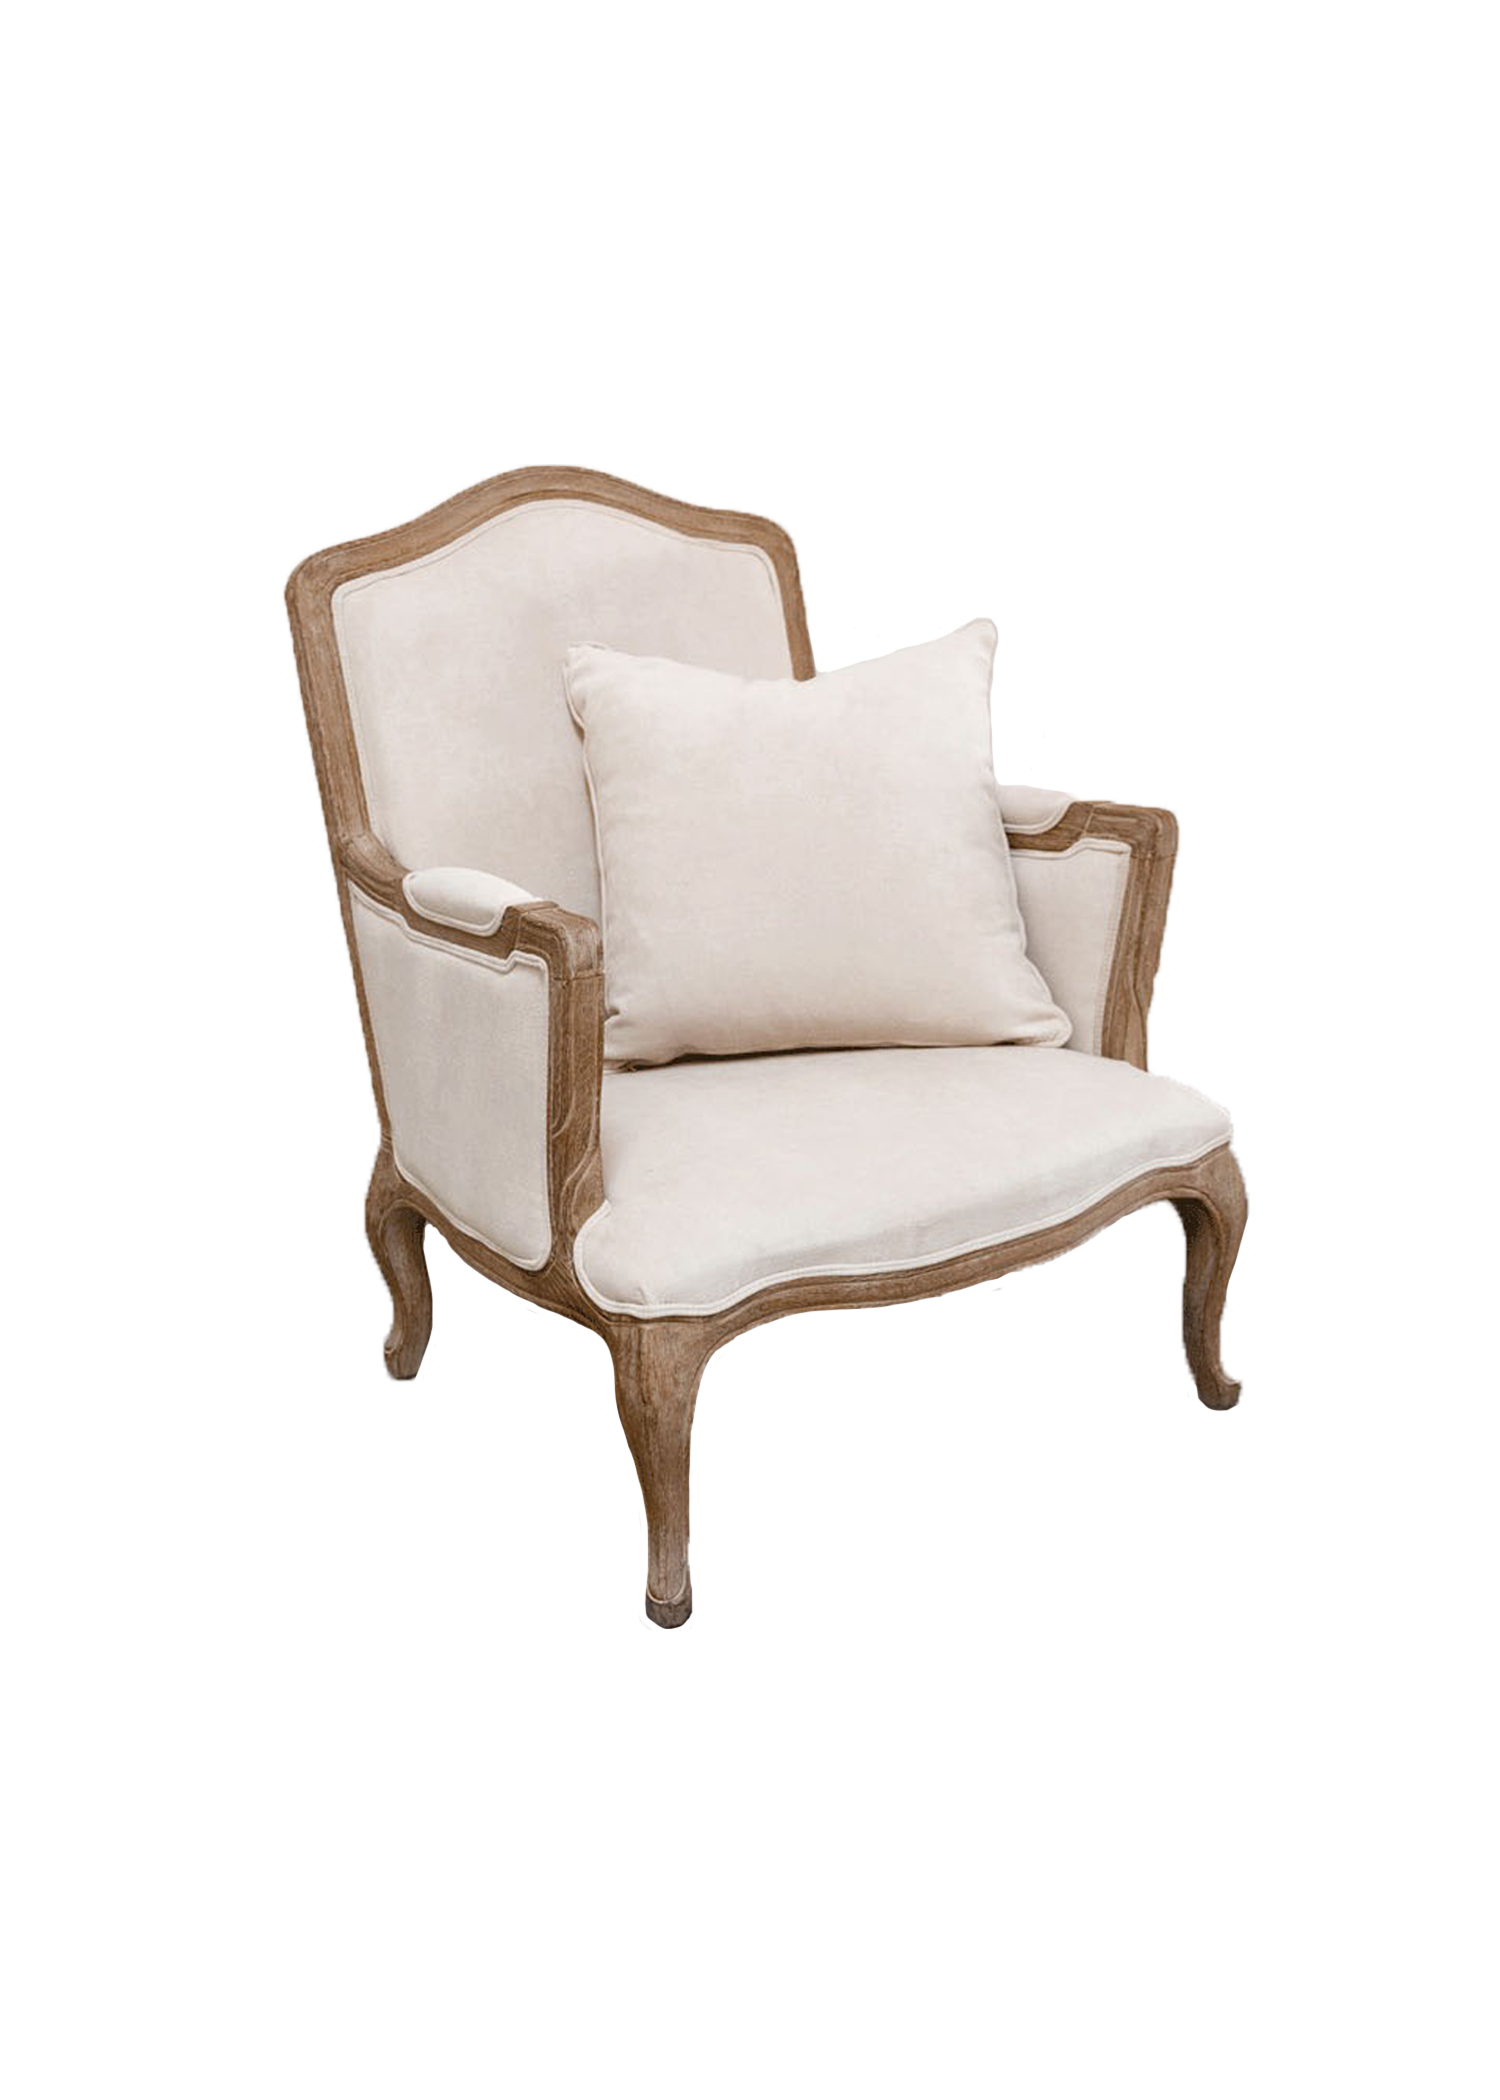 $90 Alexandra Chair